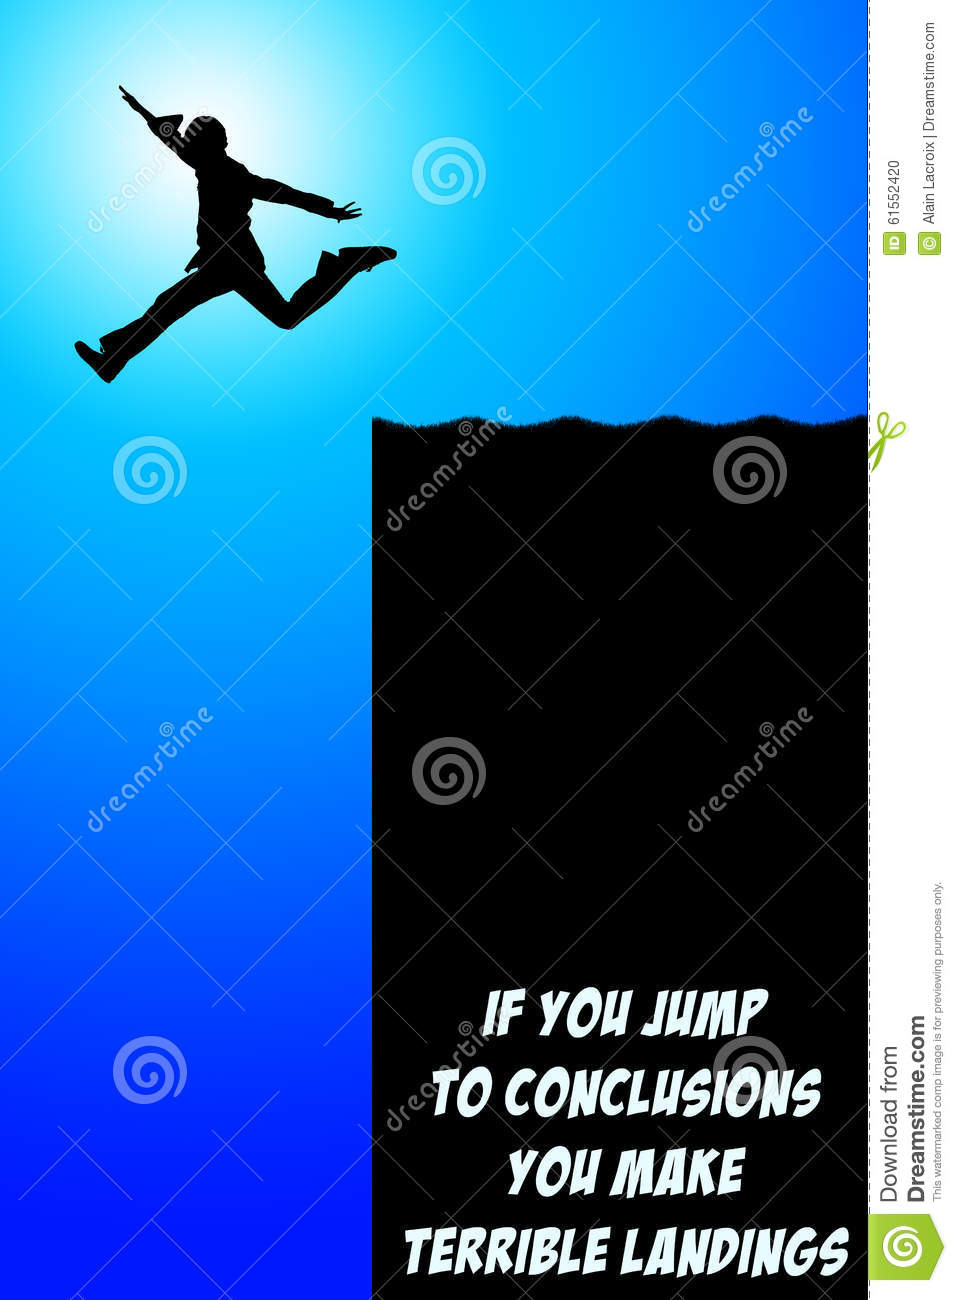 Jumping to conclusions is wrong